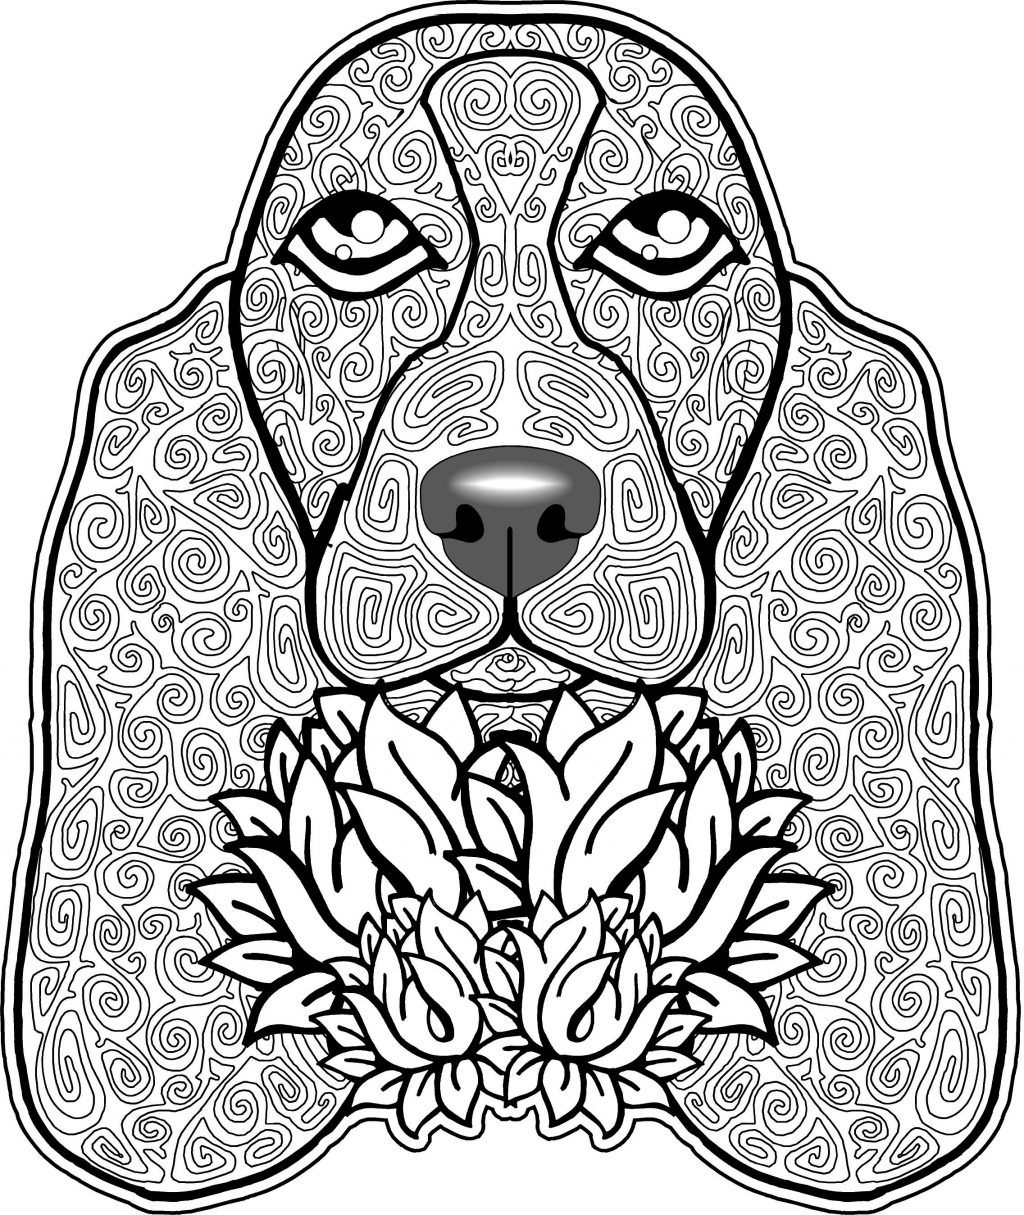 Dog Coloring Pages For Adults Dog Coloring Pages Letter D Is For Book Colouring Adults Hard Cute